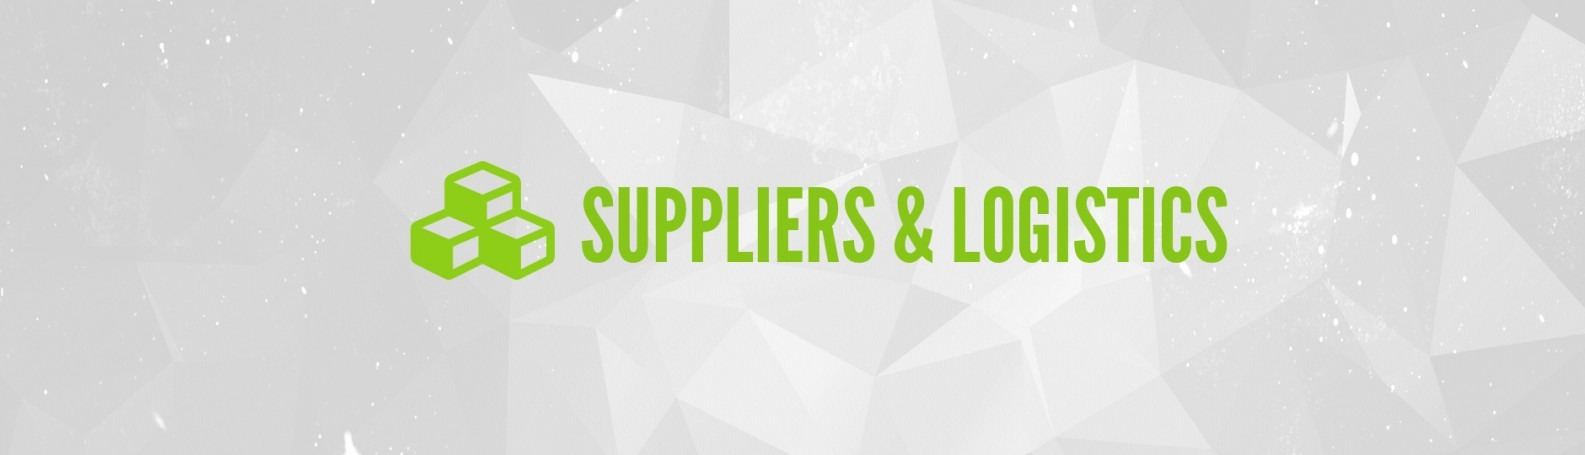 Supplier and Logistics Header